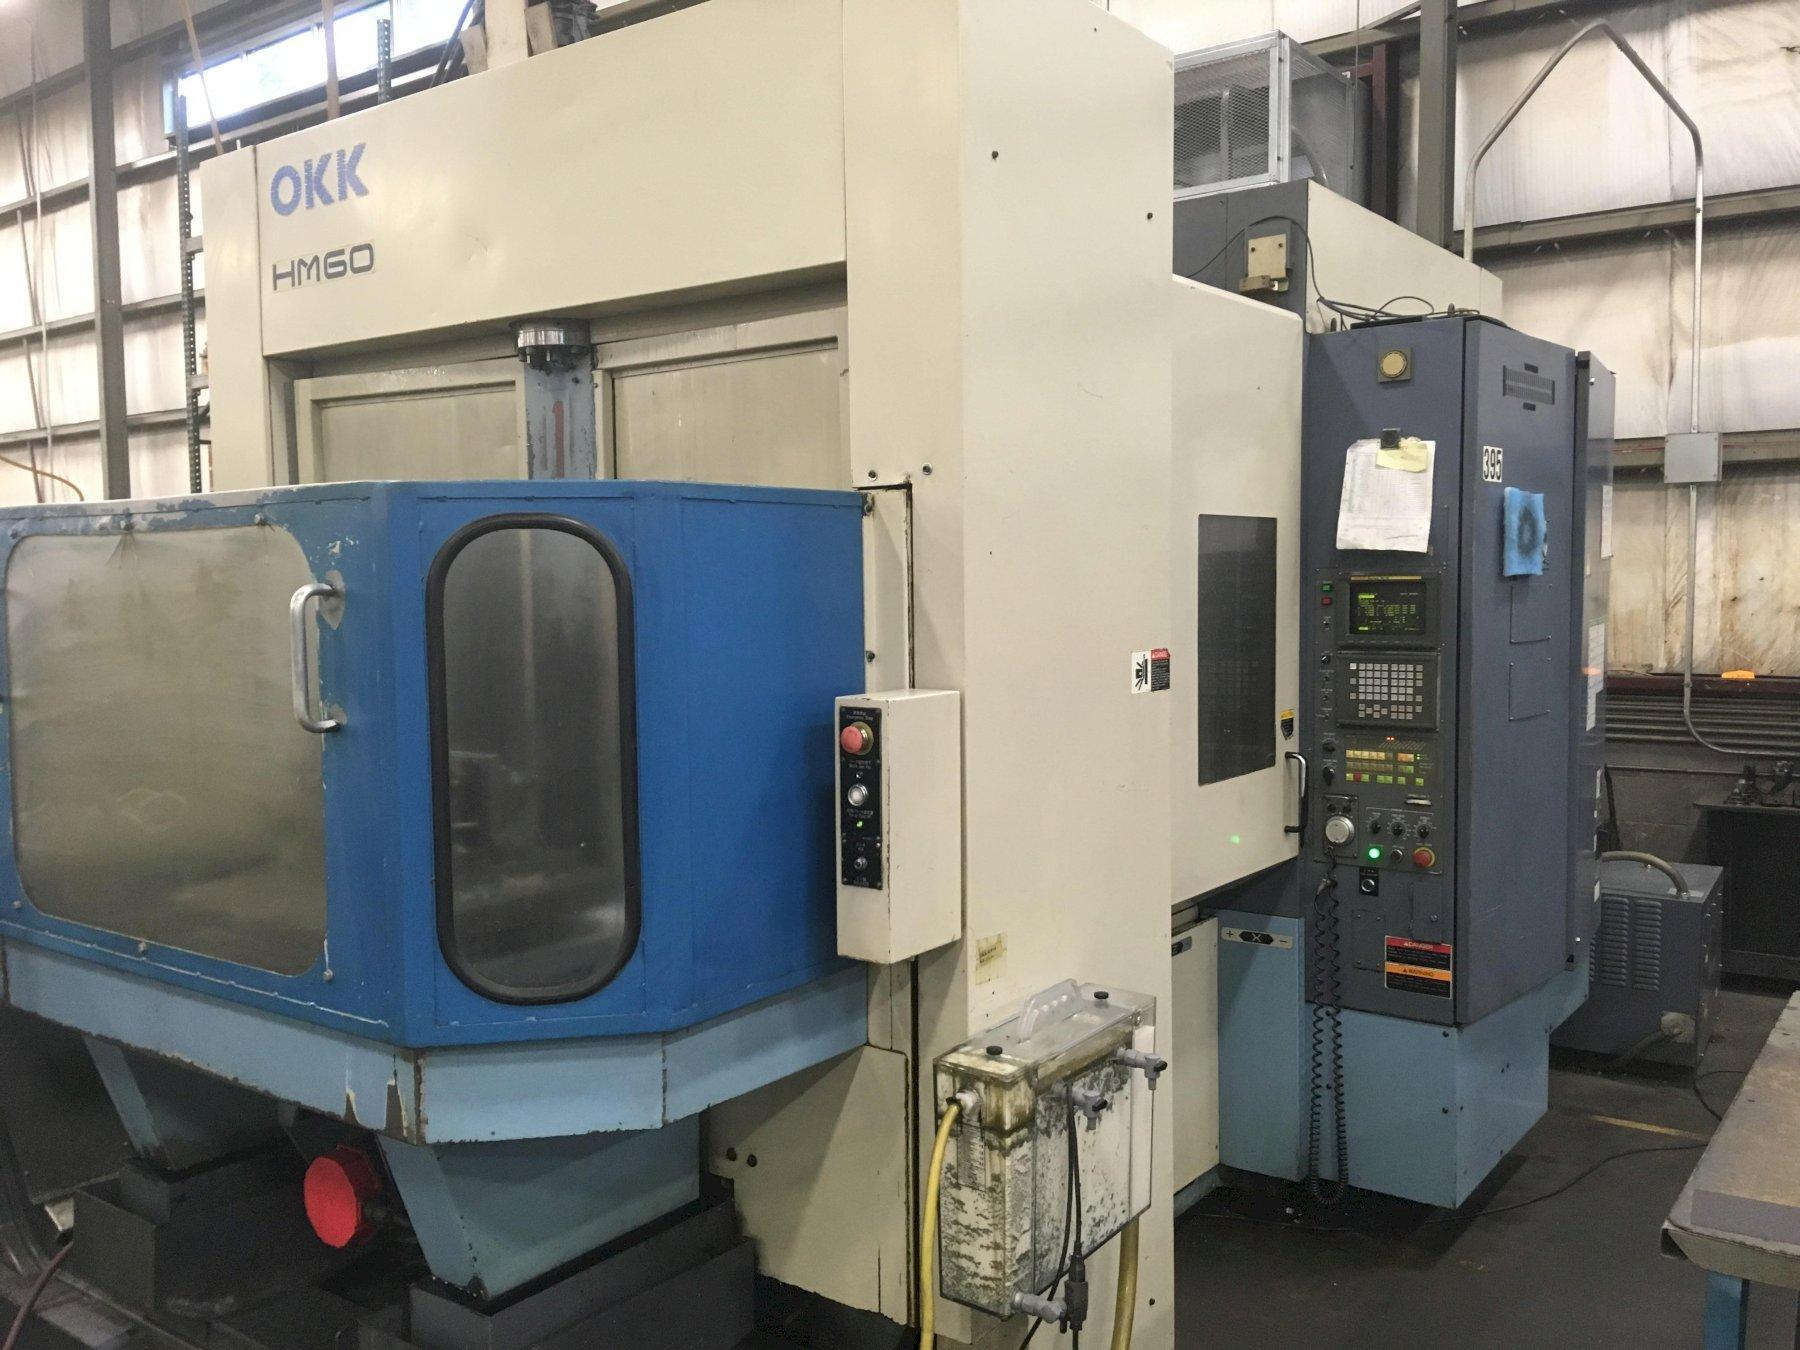 OKK HM60 HORIZONTAL MACHINING CENTER